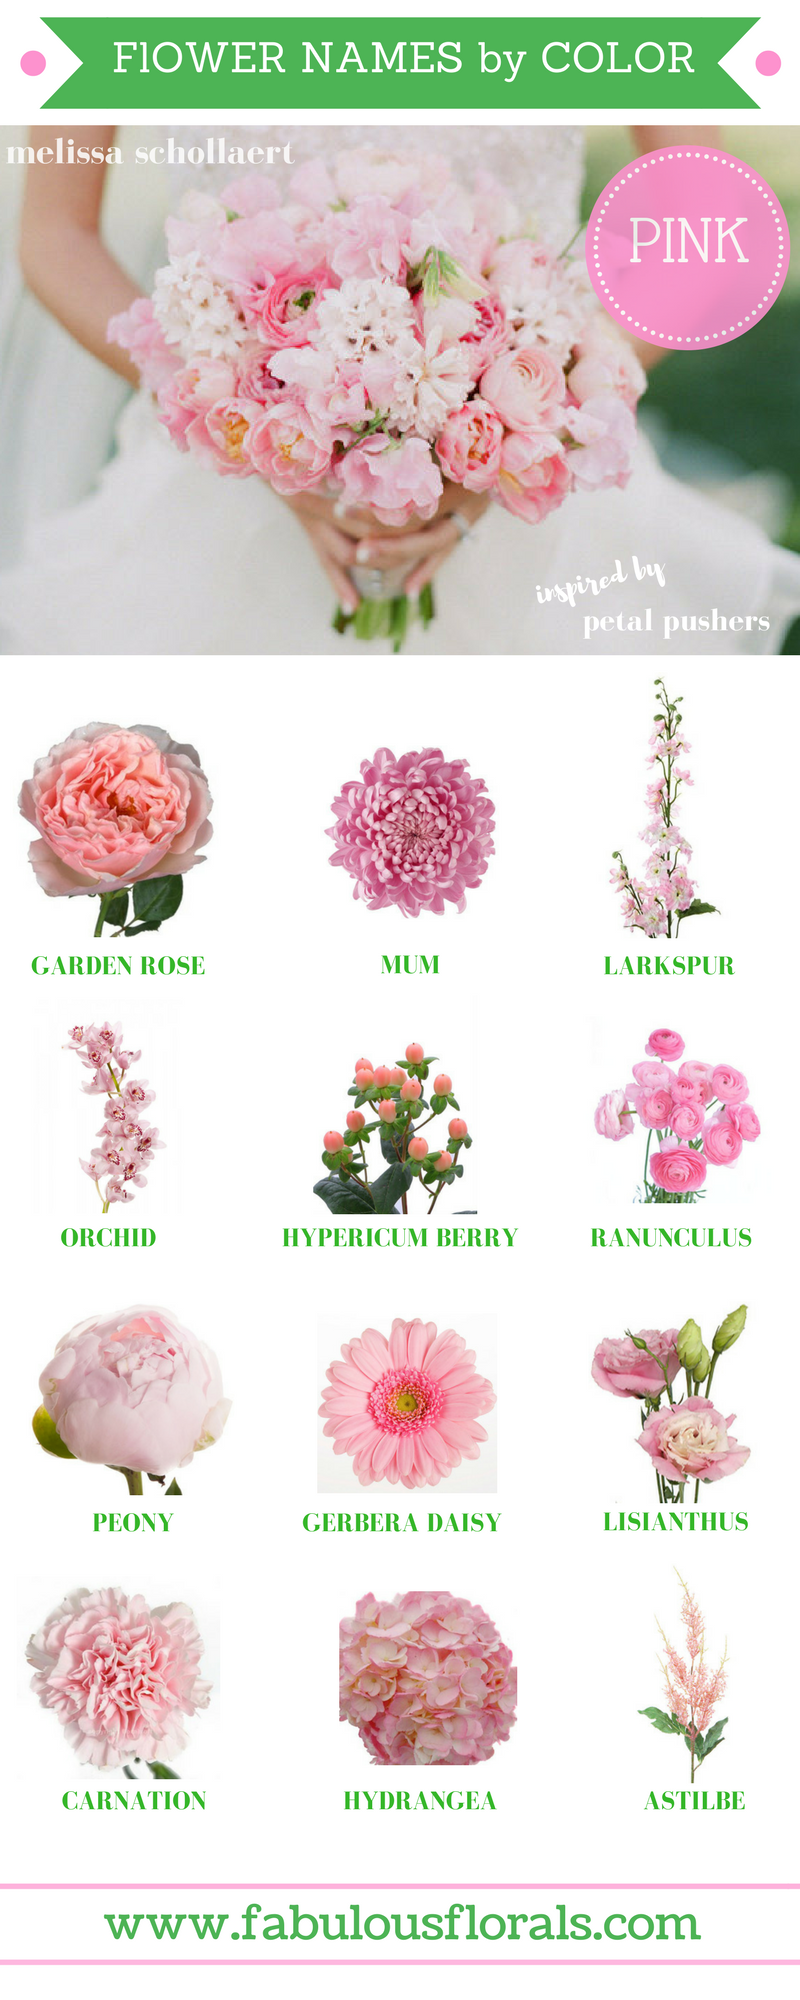 Flower Names By Color 2017 Wedding Trends Your 1 Source For Whole Diy Flowers Pink Diyflowers Weddingflowers Weddinggreenery